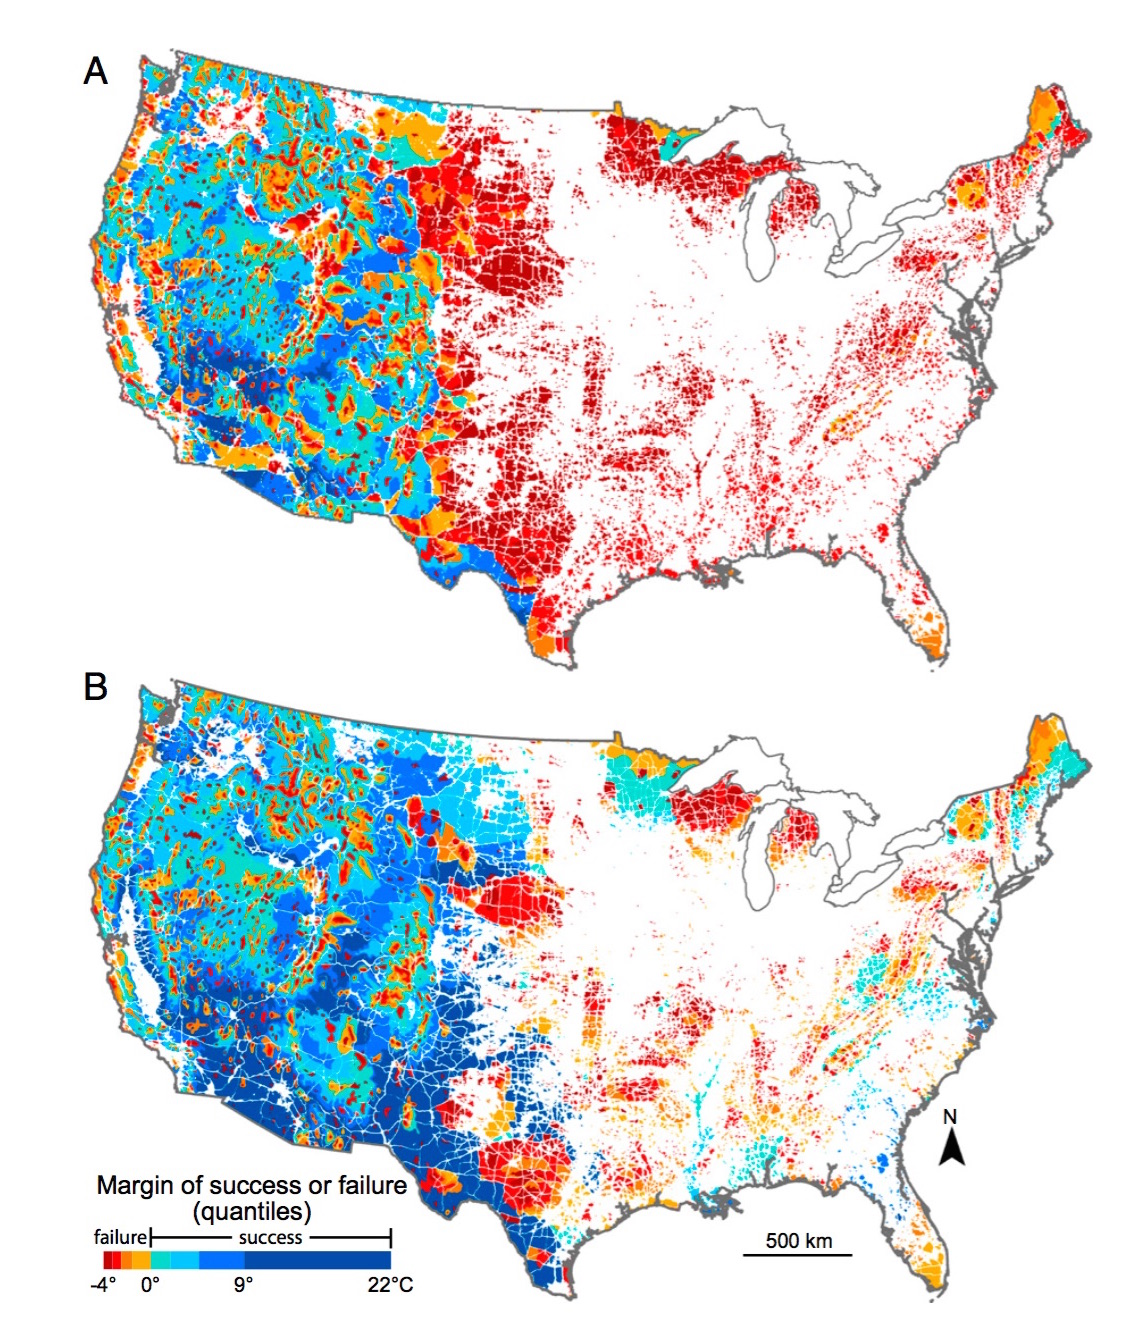 Margin of success or failure at achieving climate connectivity. Negative temperatures, in red to orange colors, indicate a failure to achieve climate connectivity; positive temperatures, in blue colors, indicate success. (A) Without corridors. (B) With corridors.